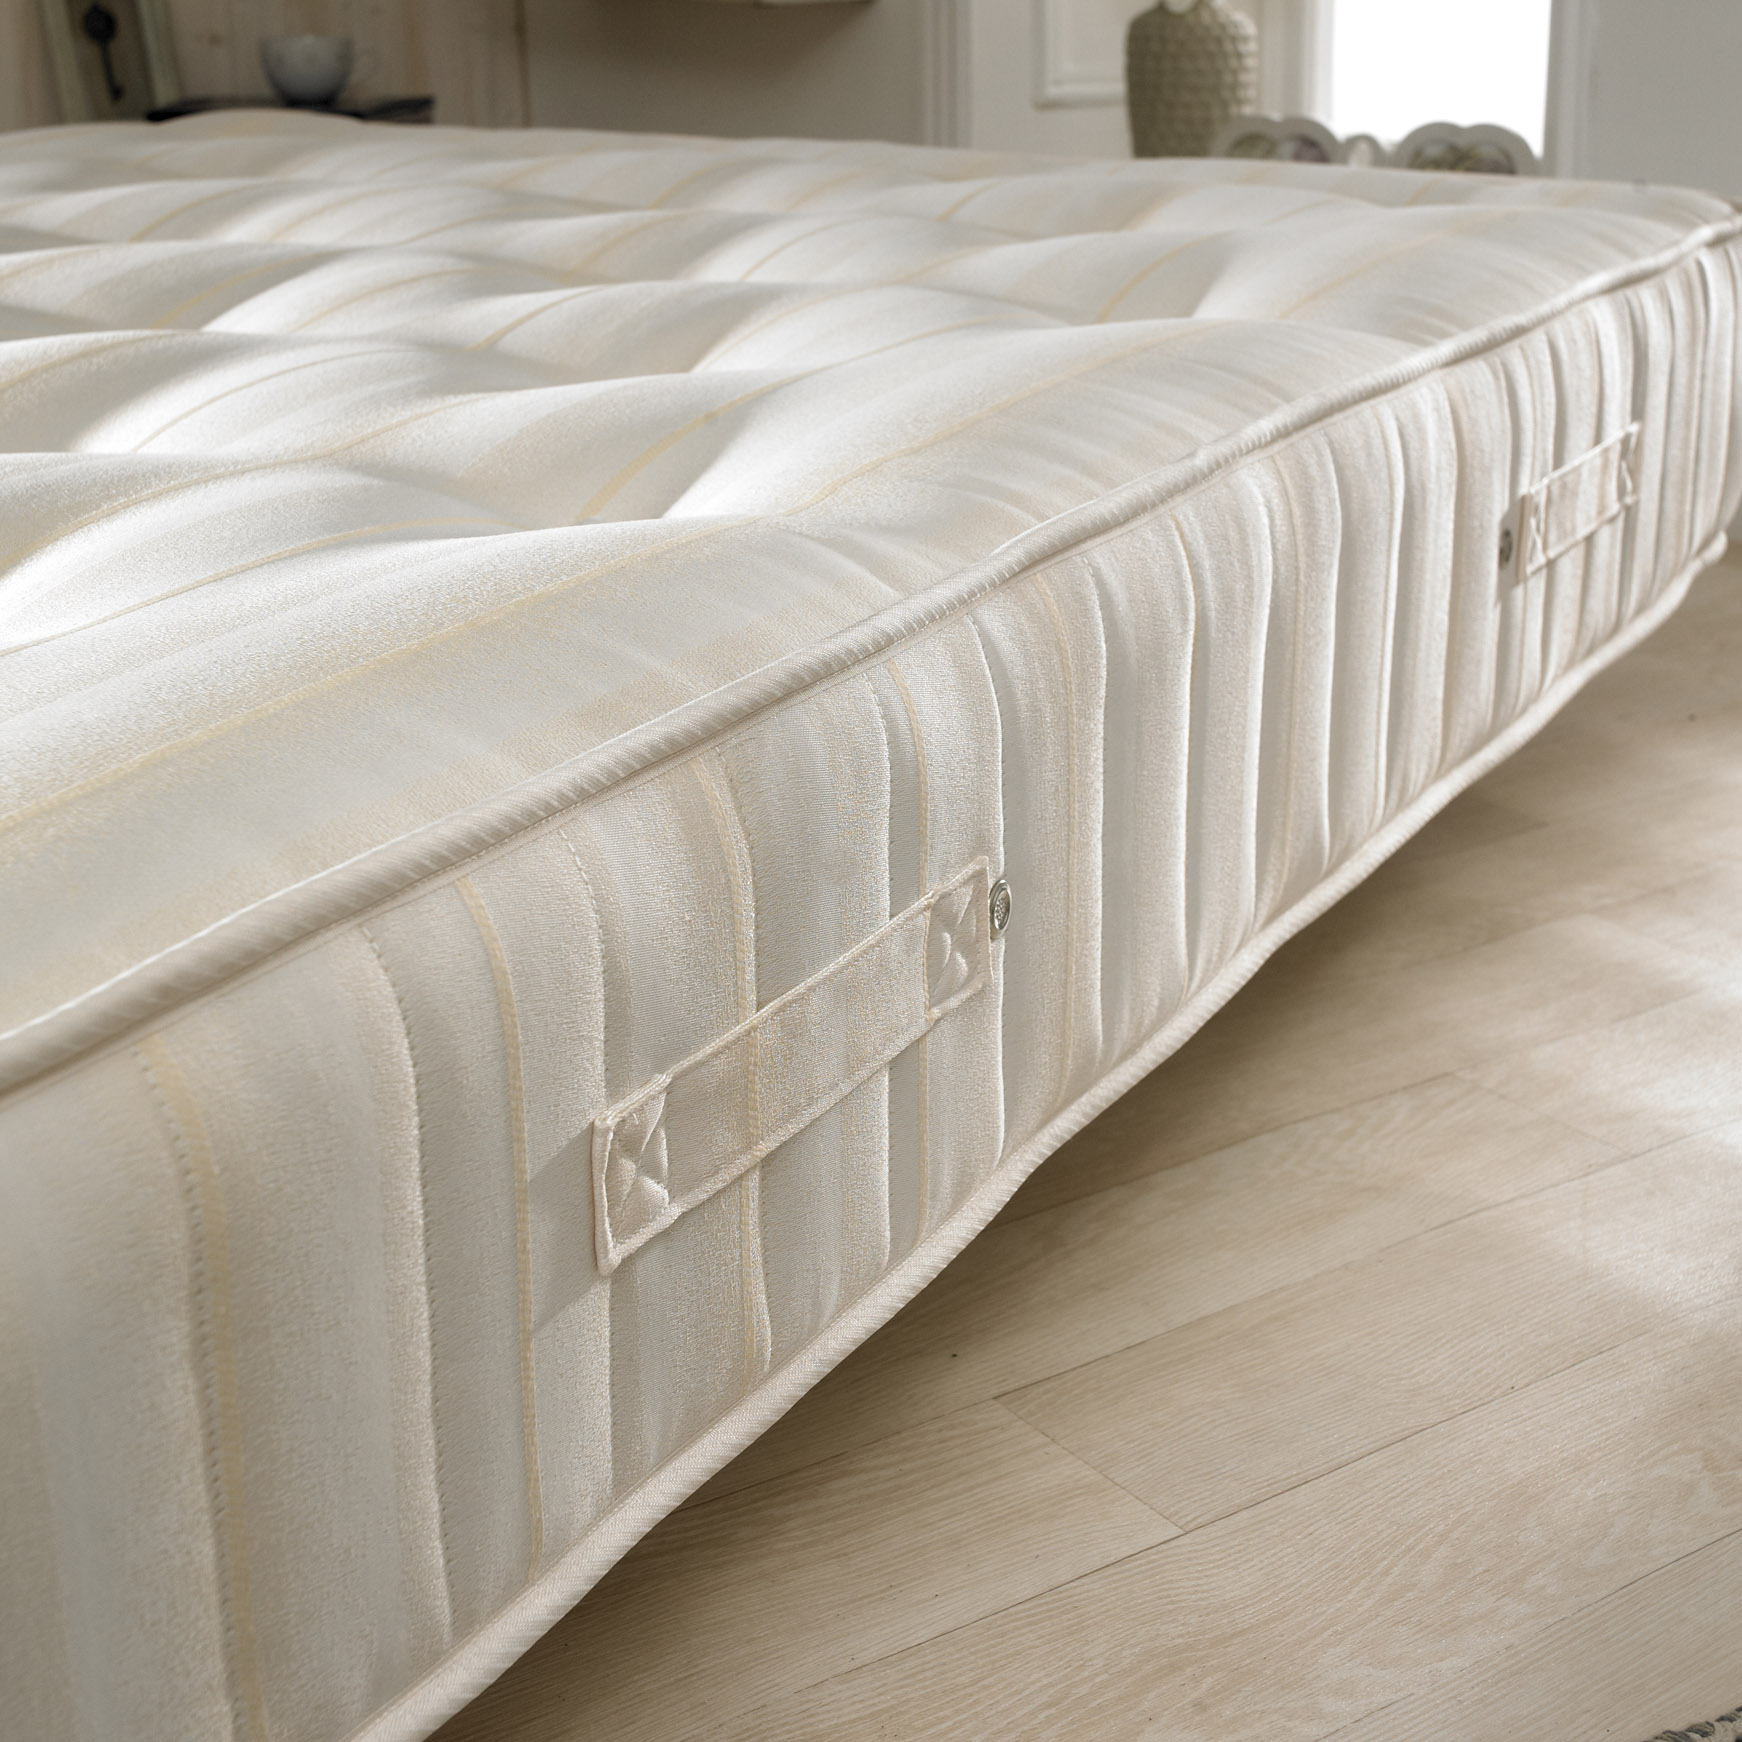 Bonnell Sprung Mattress With Memory Foam Layer Happy Beds Supreme Ortho Orthopaedic Mattress Handmade